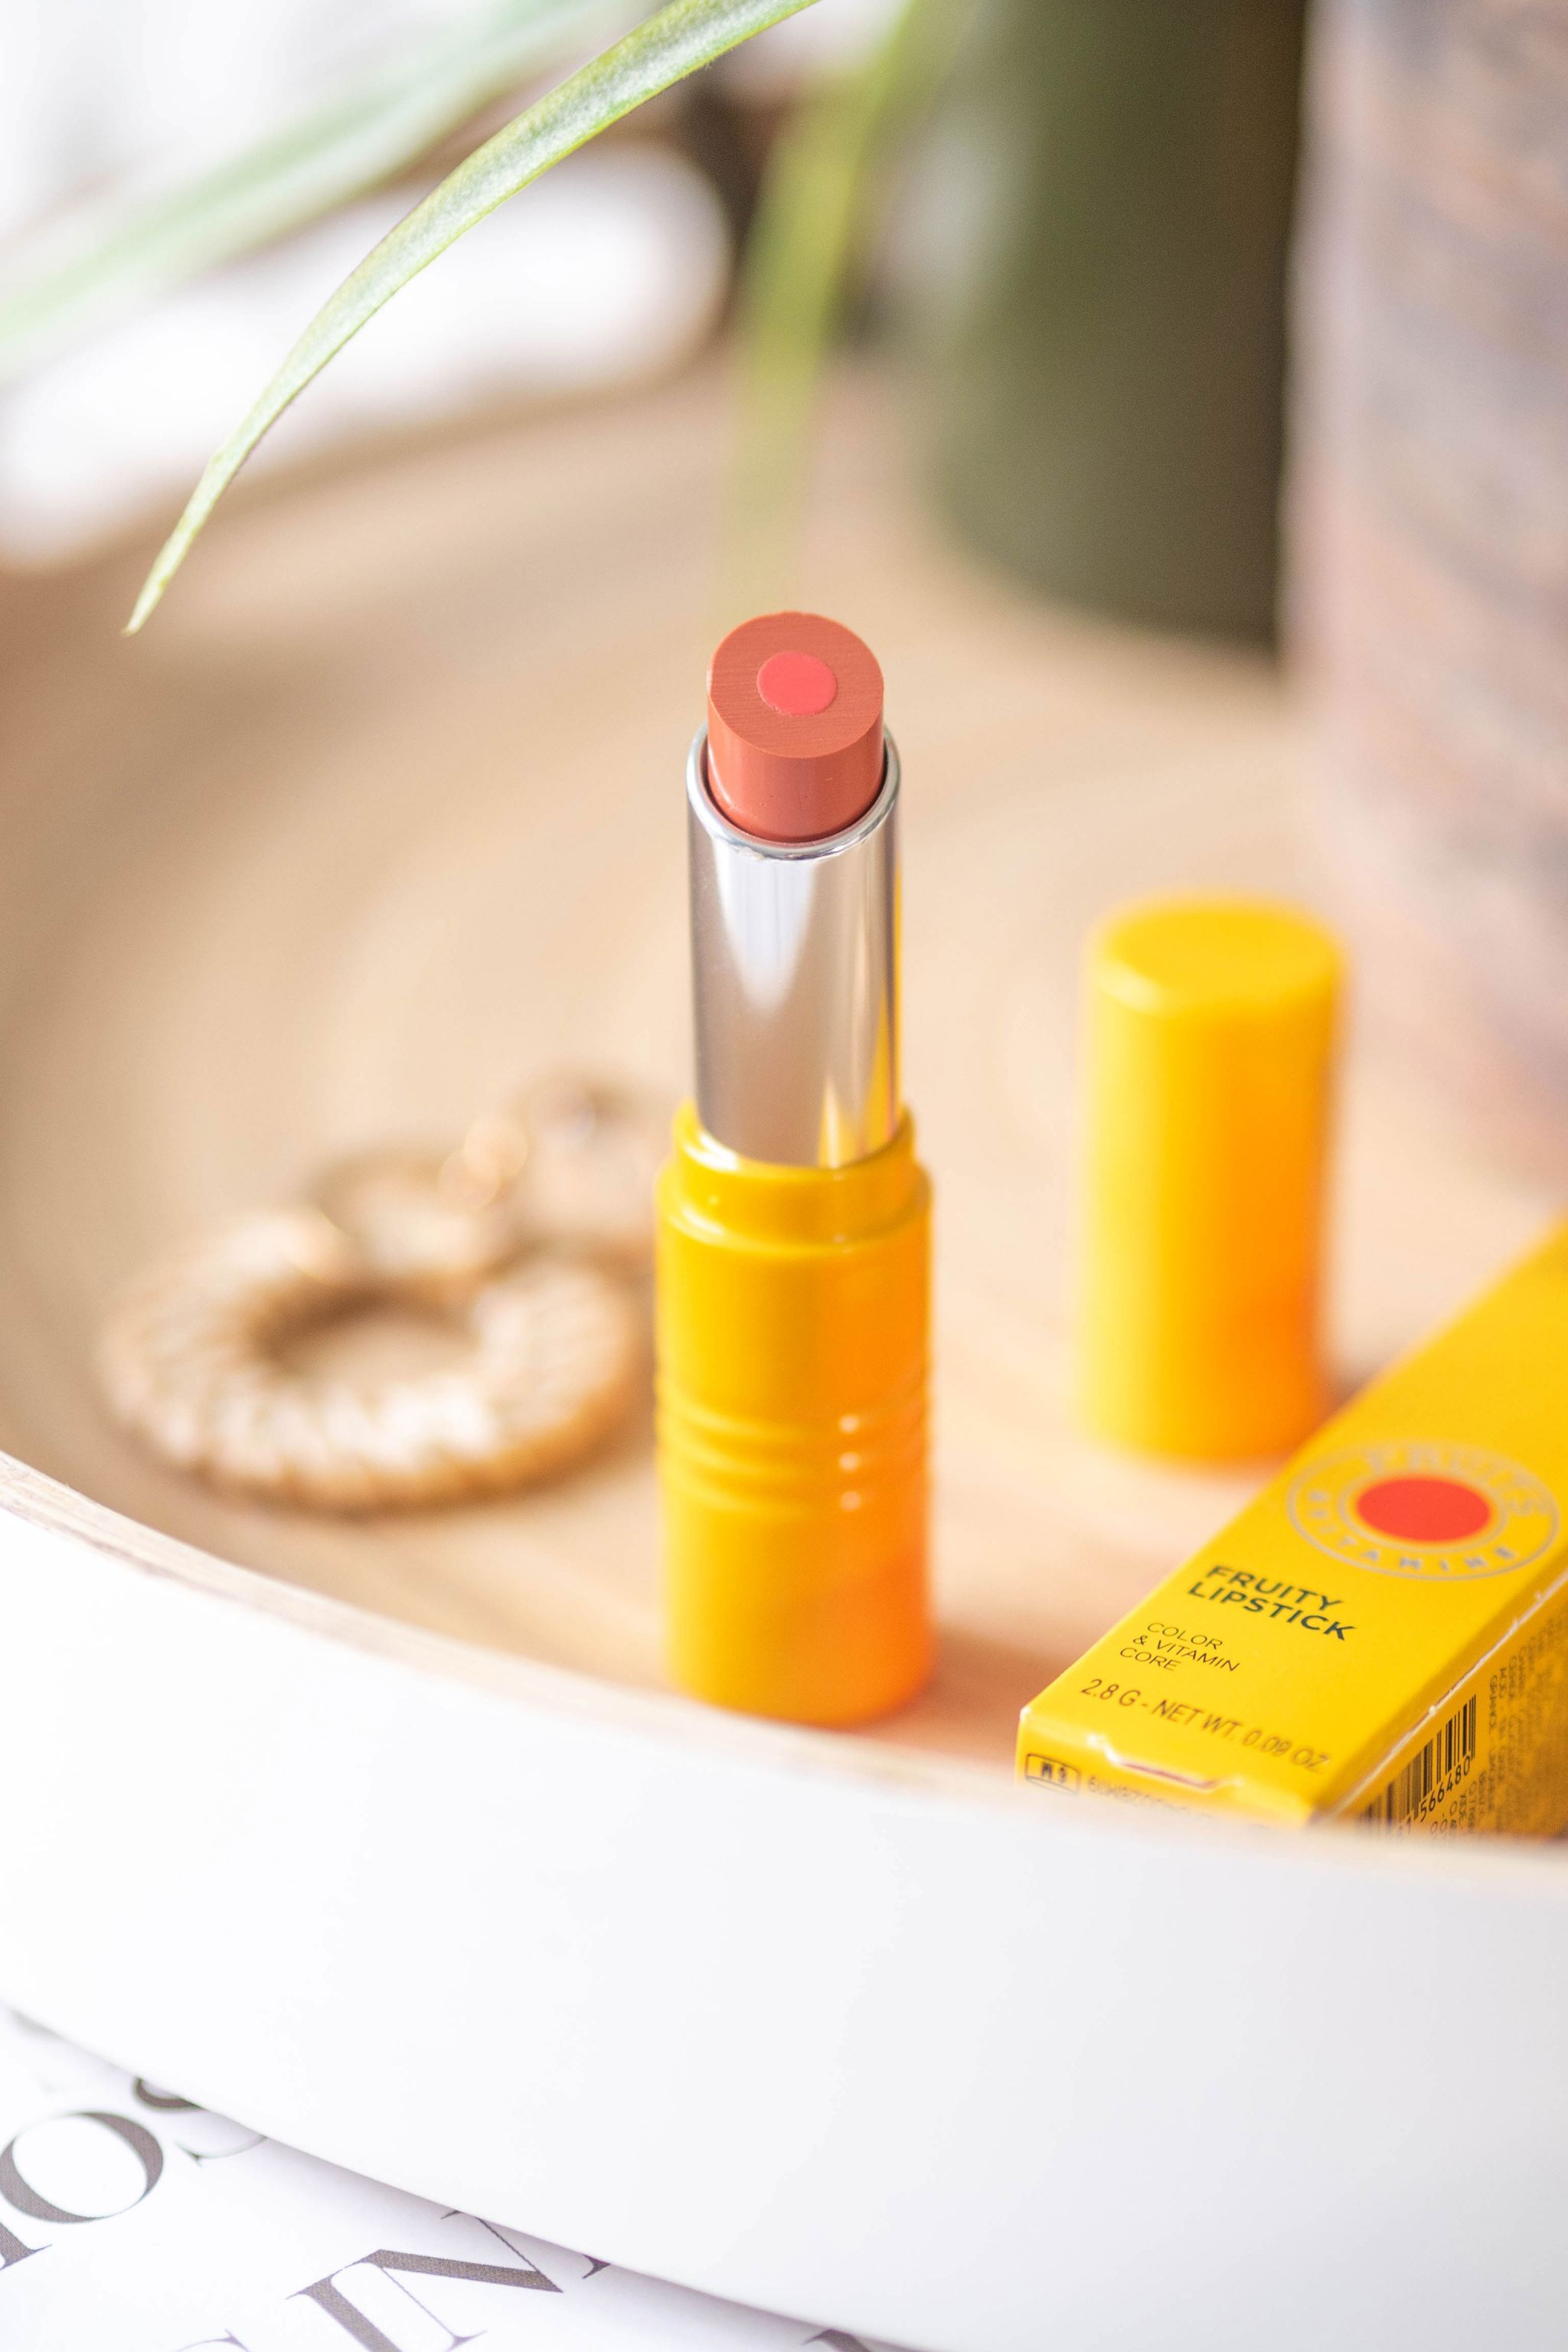 L'Occitane Fruity lipstick review and swatches